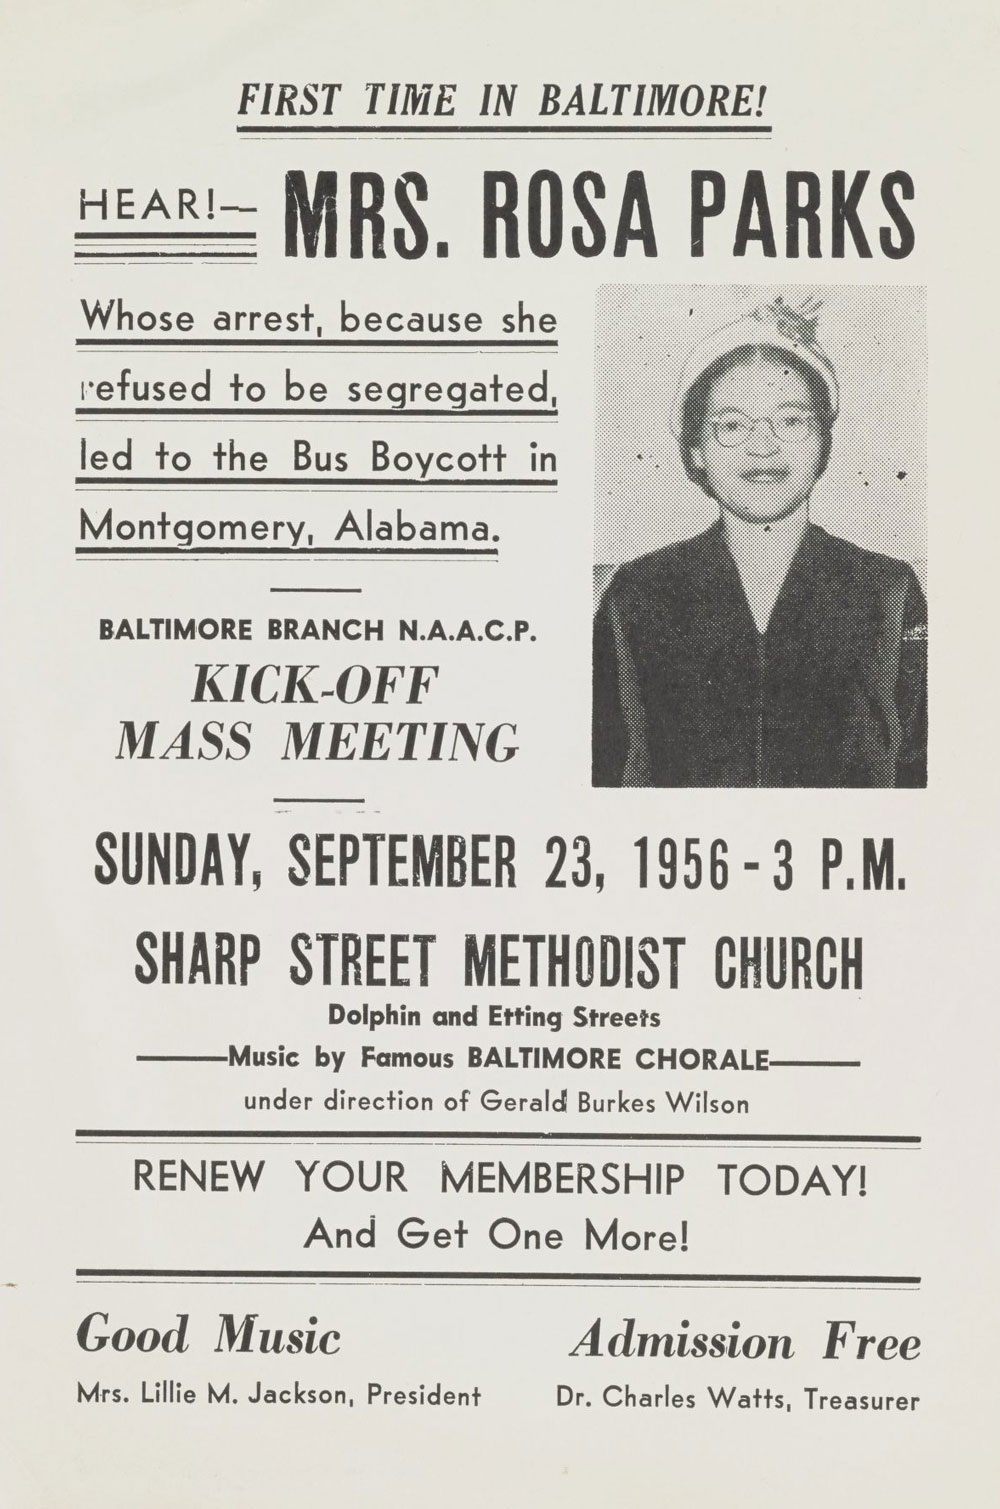 rosa parks meeting poster between 1956